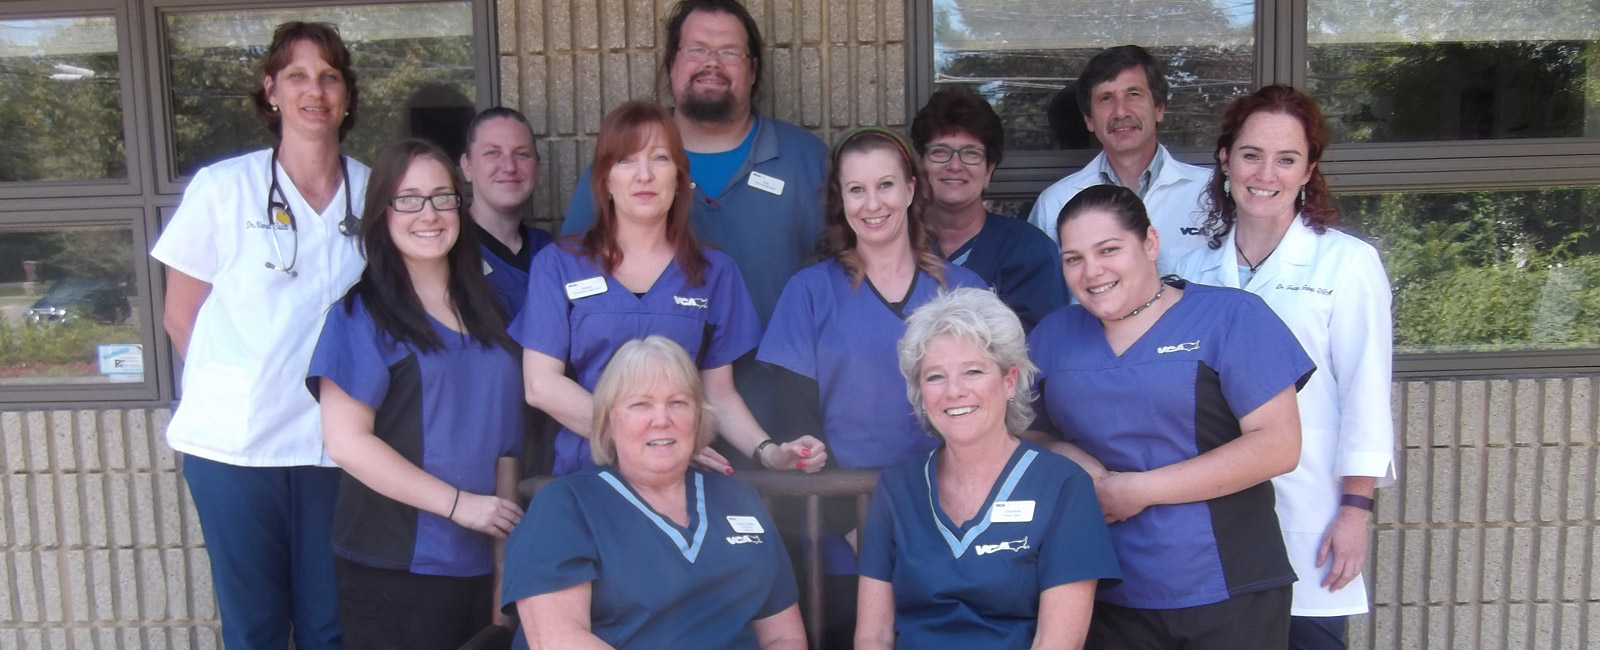 Team Picture of VCA Bristol Animal Hospital